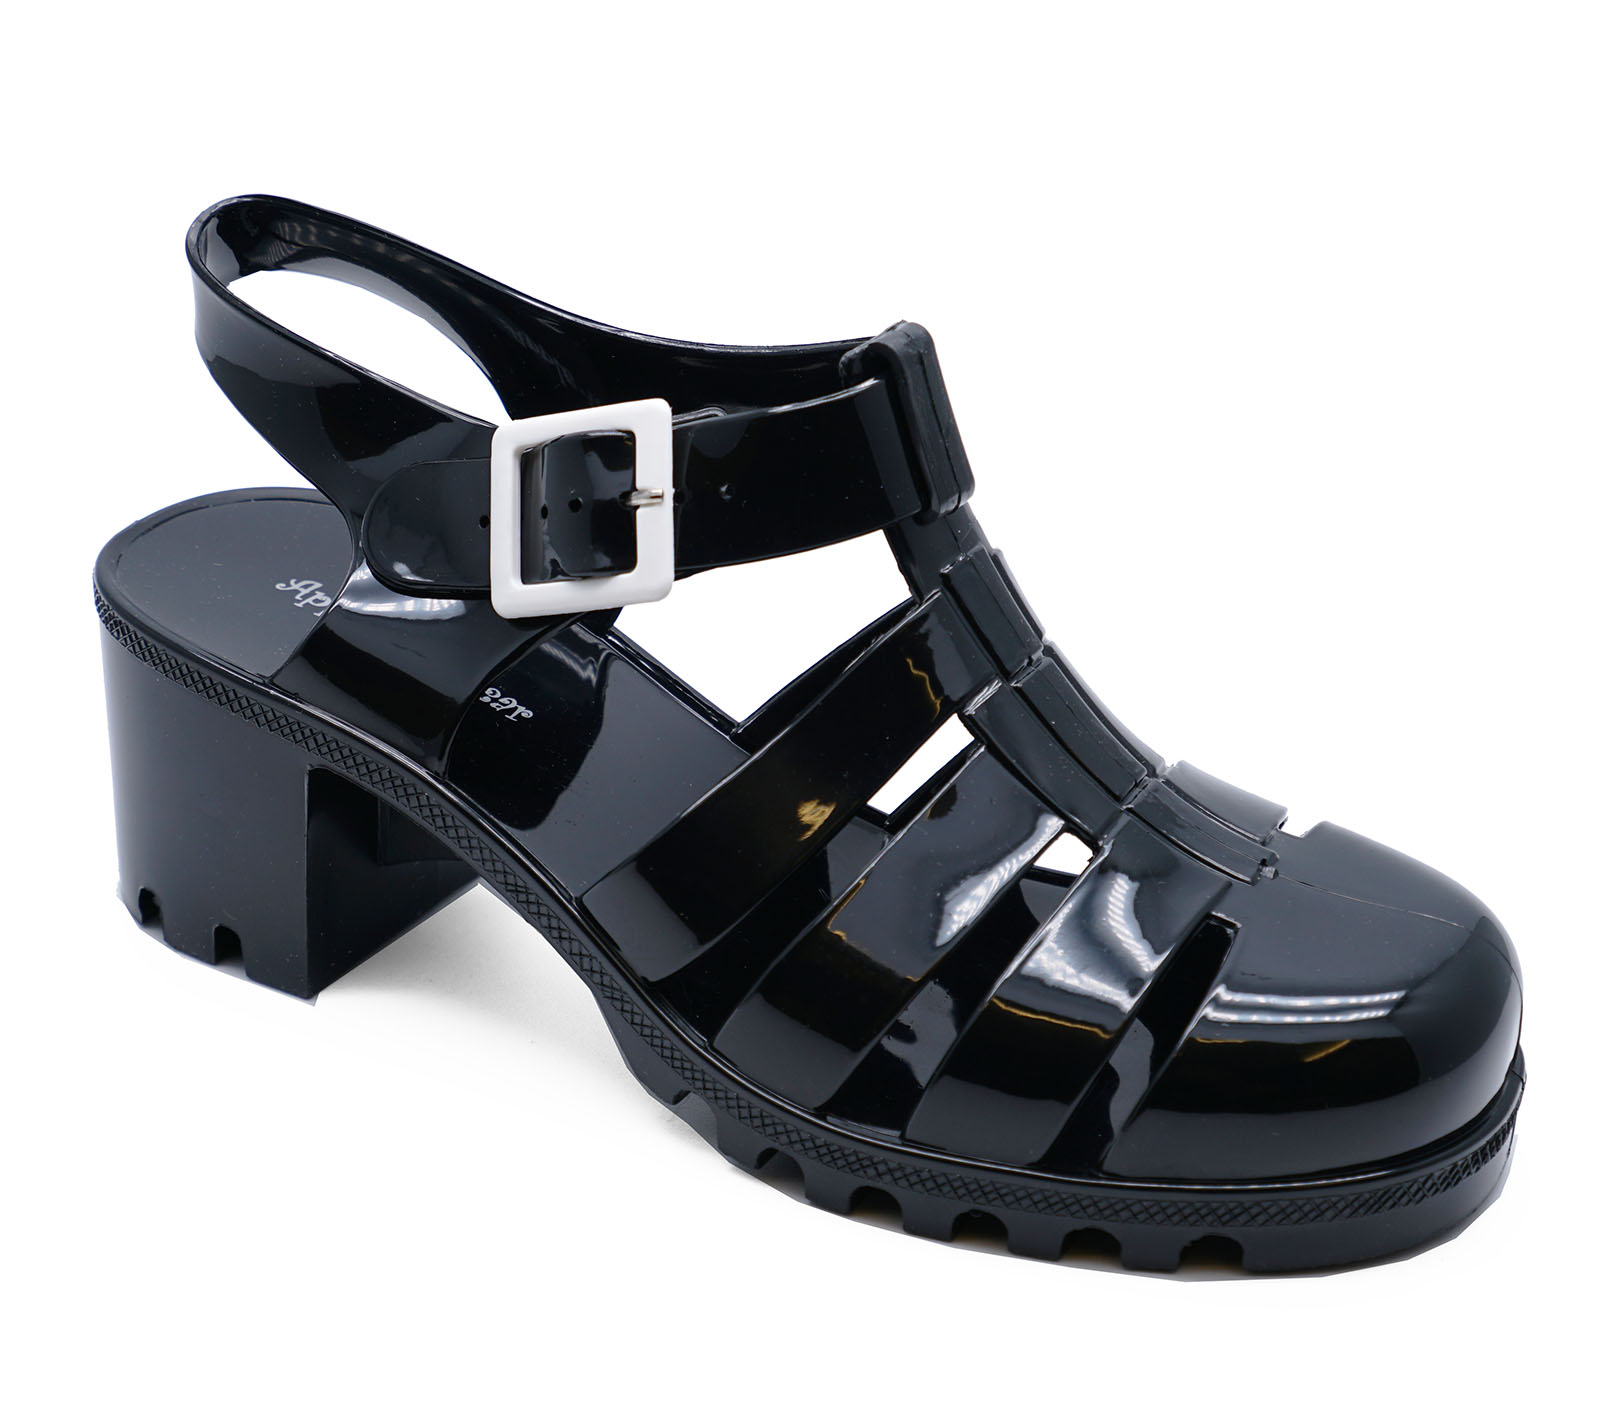 dafdfb484f80f Sentinel LADIES BLACK JELLY GLADIATOR RETRO SANDALS FESTIVAL BEACH HOLIDAY  SHOES UK 3-8